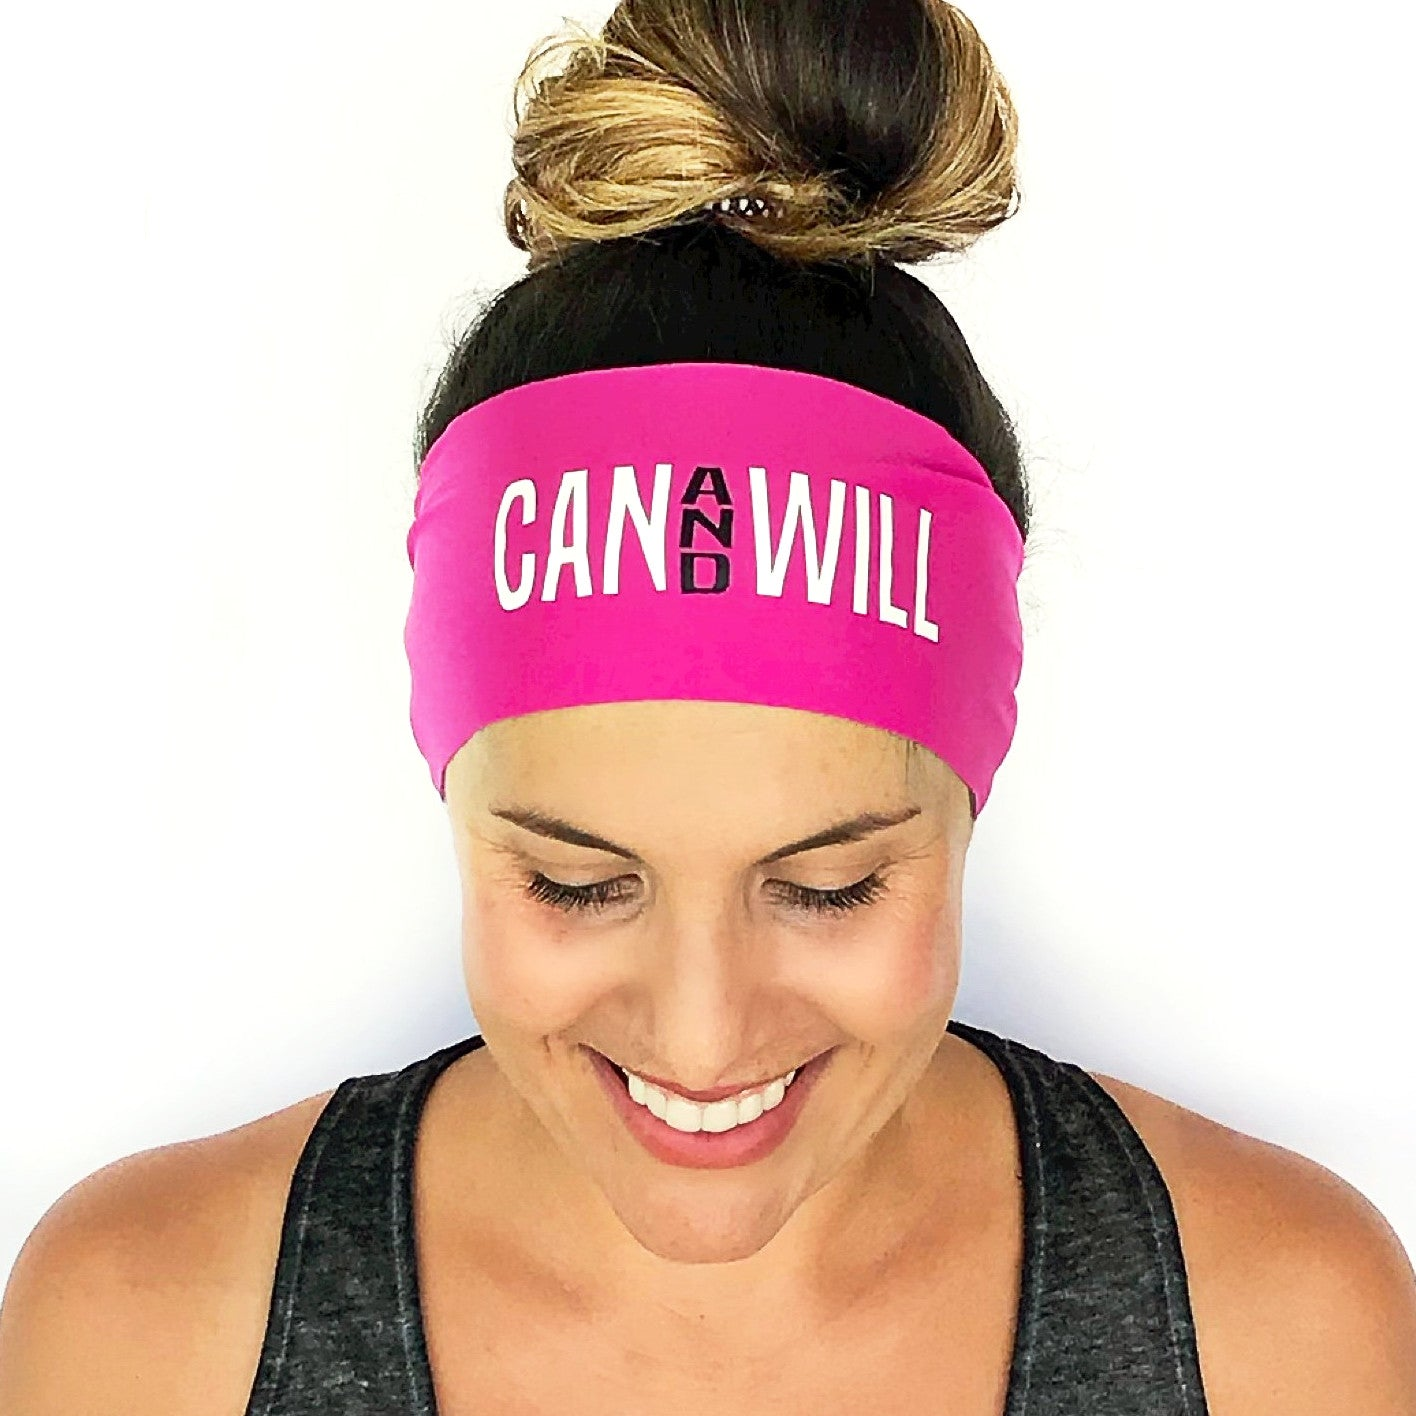 Can And Will Scripted Headband